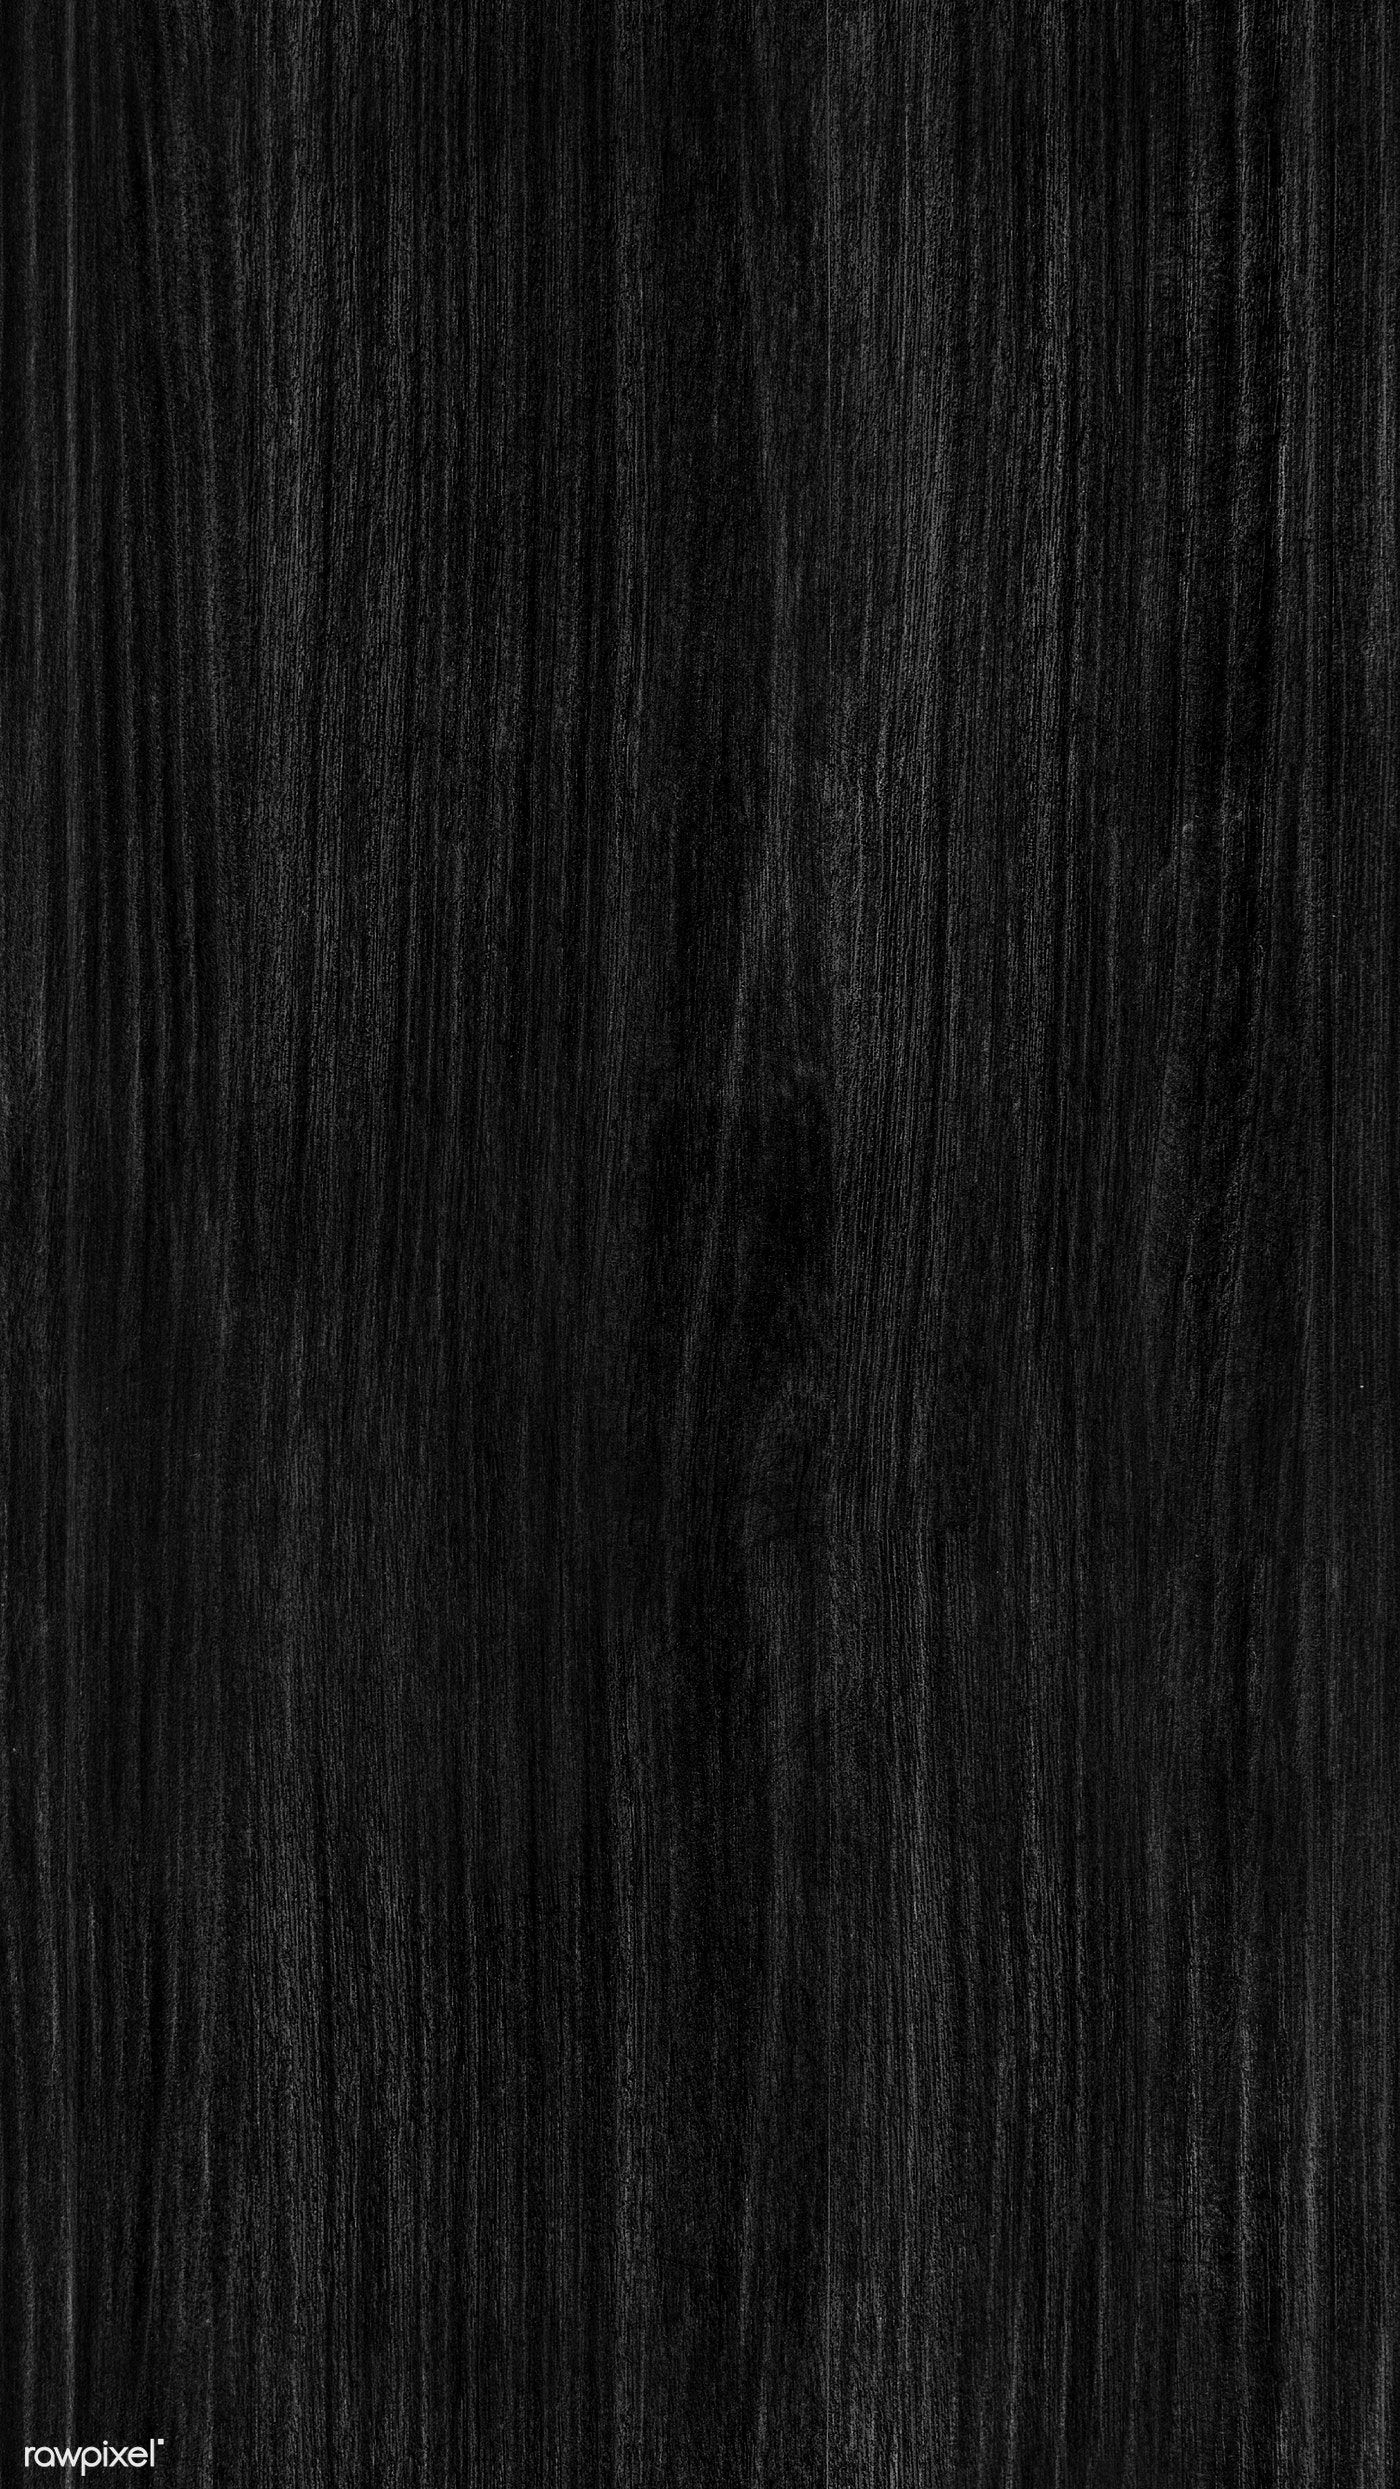 Blank Black Wooden Textured Mobile Wallpaper Background Free Image By Rawpixel Com Marine Black Wood Background Black Wood Texture Black Texture Background